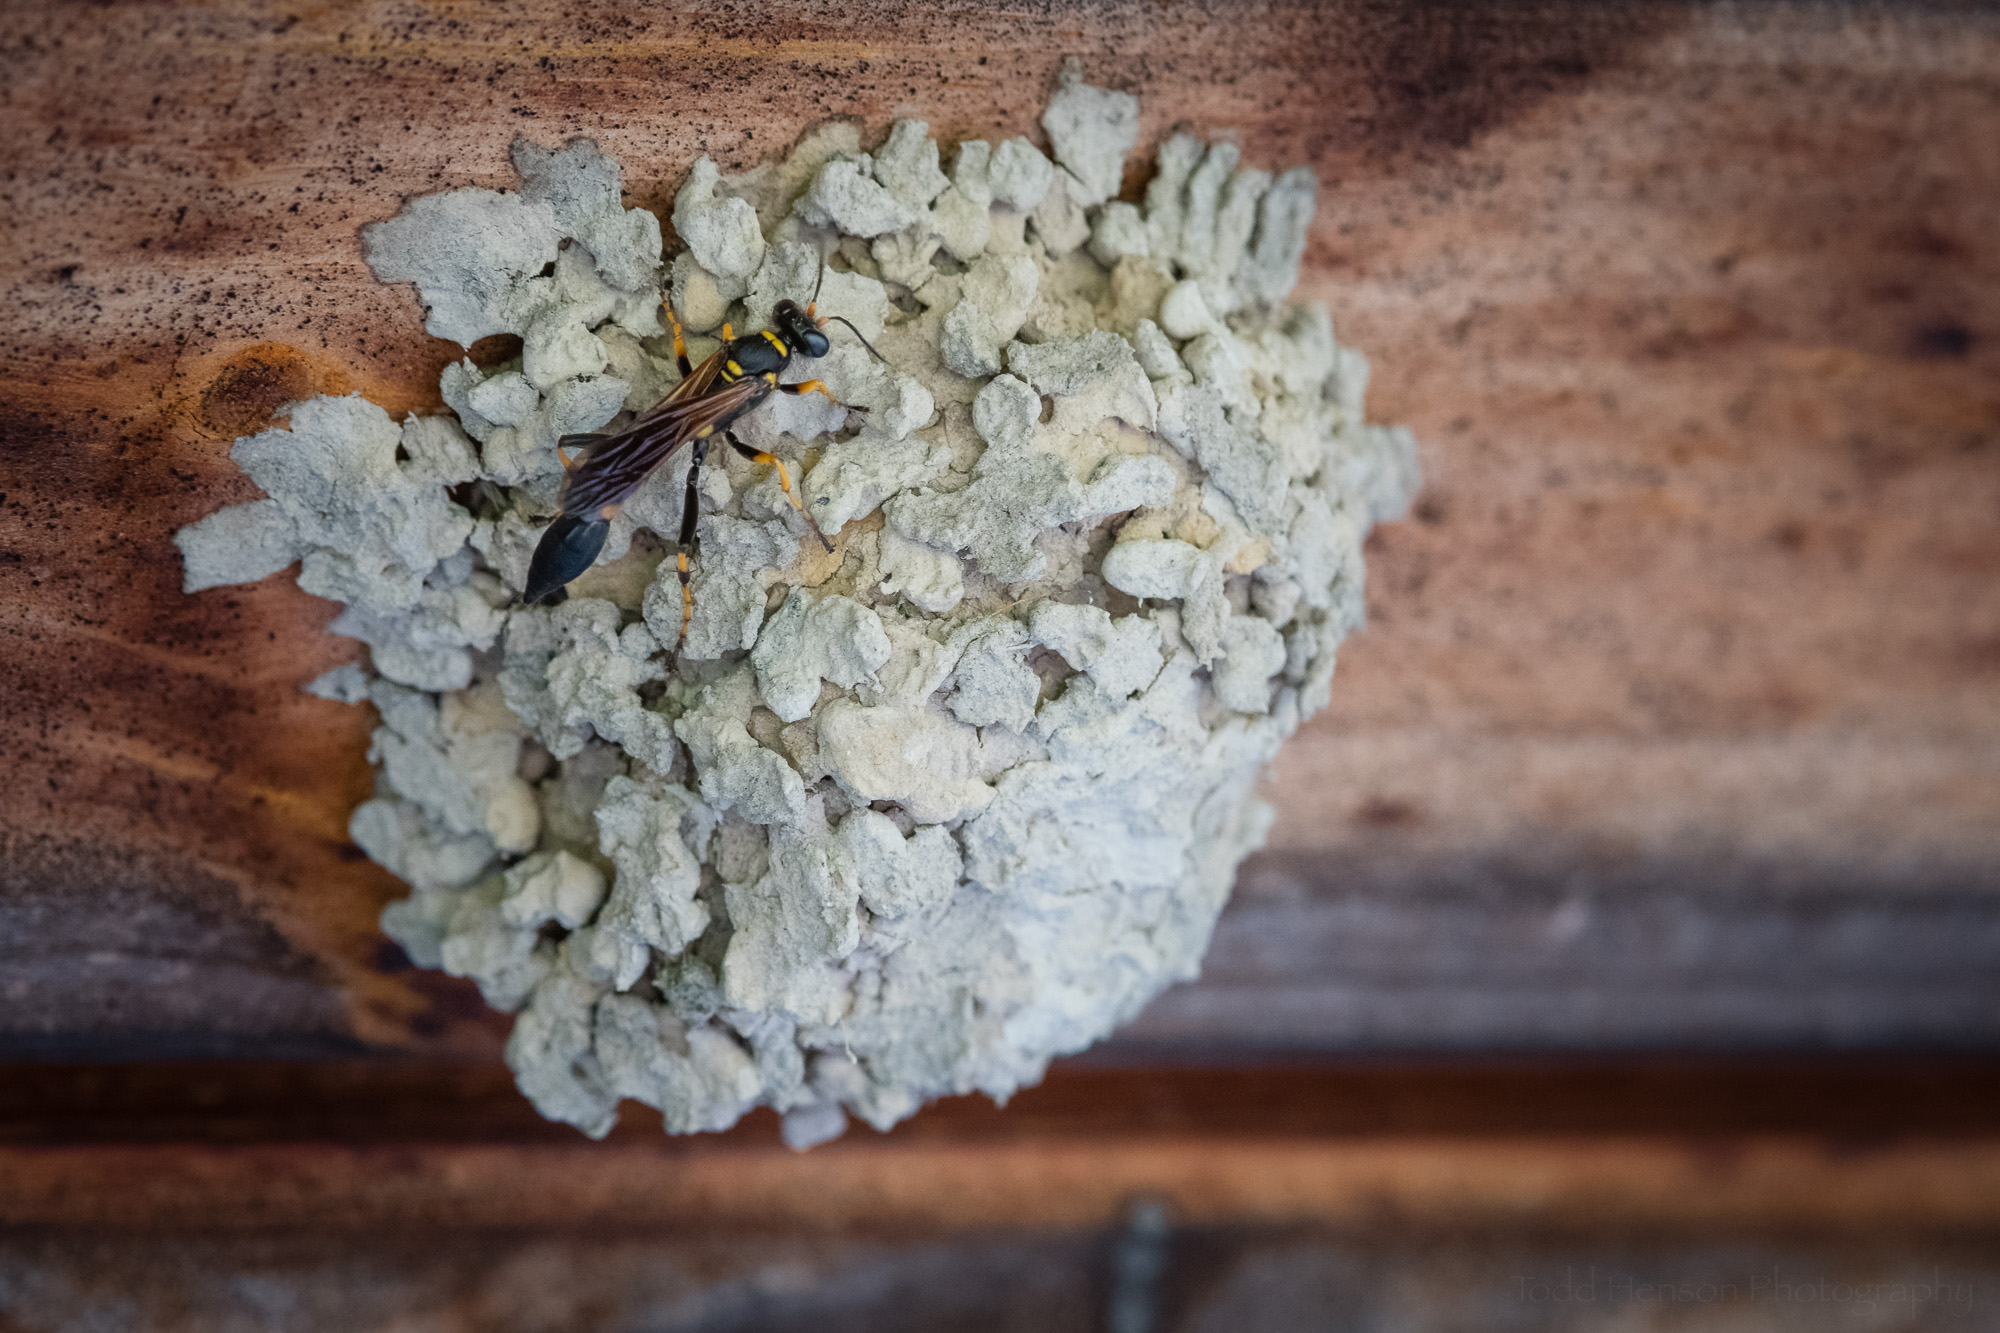 After completing her nest the mud dauber will leave her eggs to develop on their own.